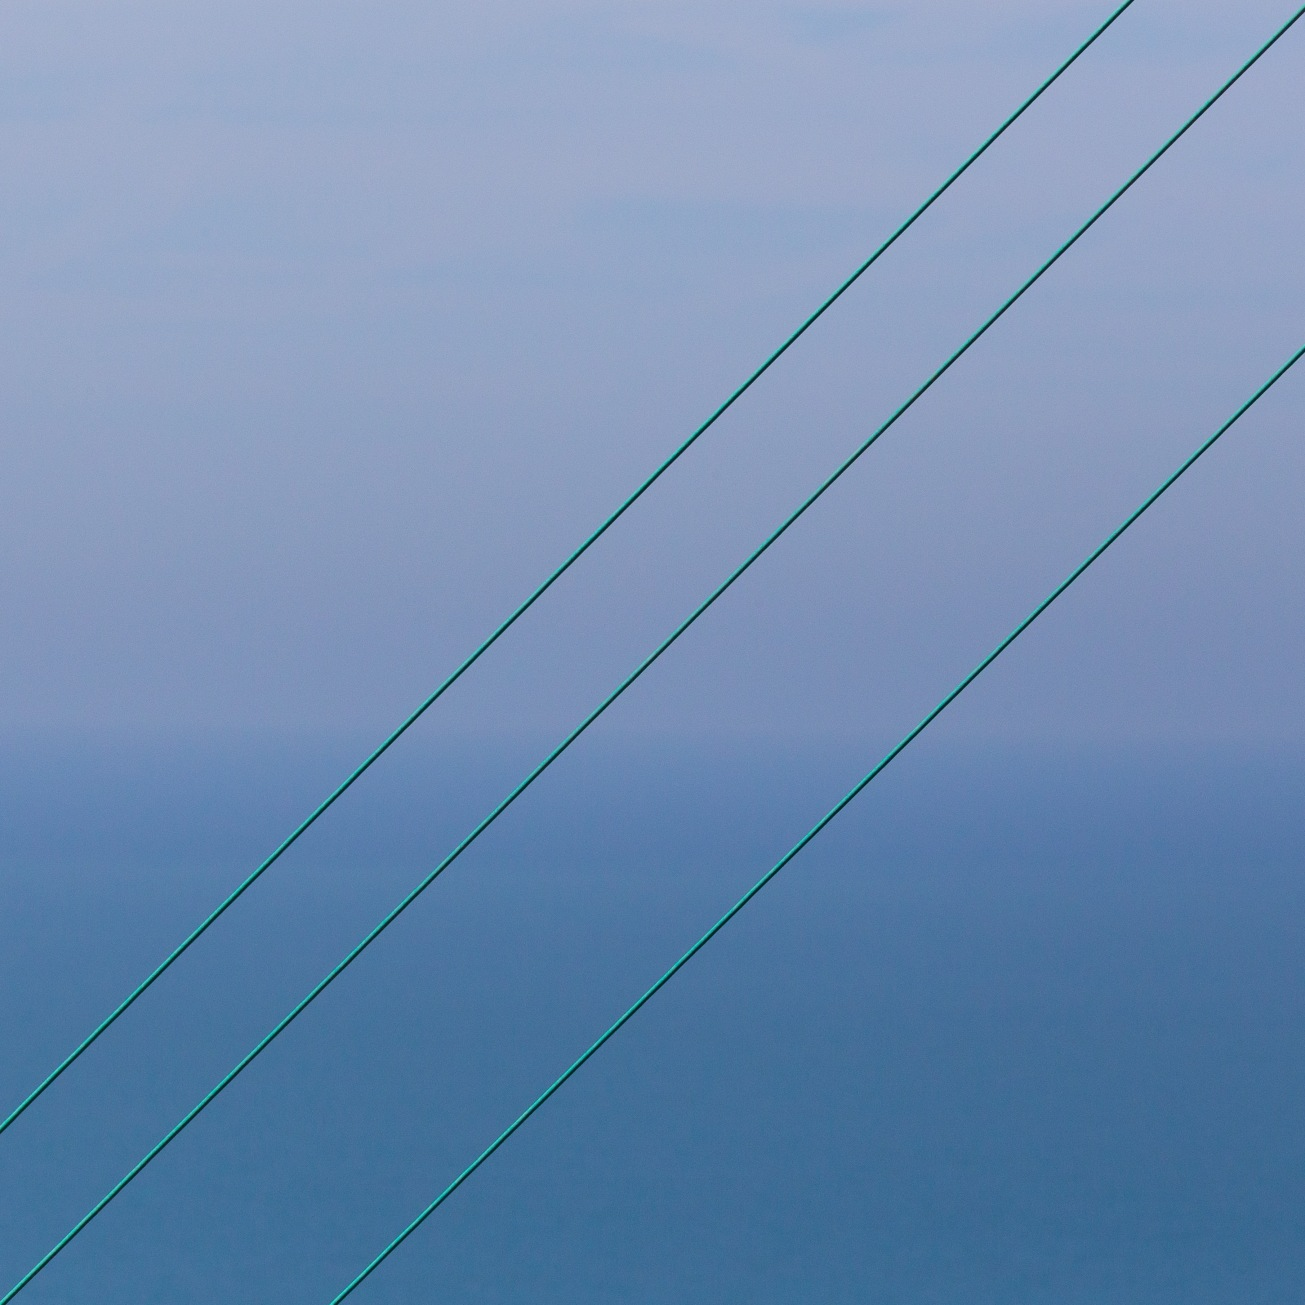 Power lines, the Warren, overlooking the Strait of Dover.